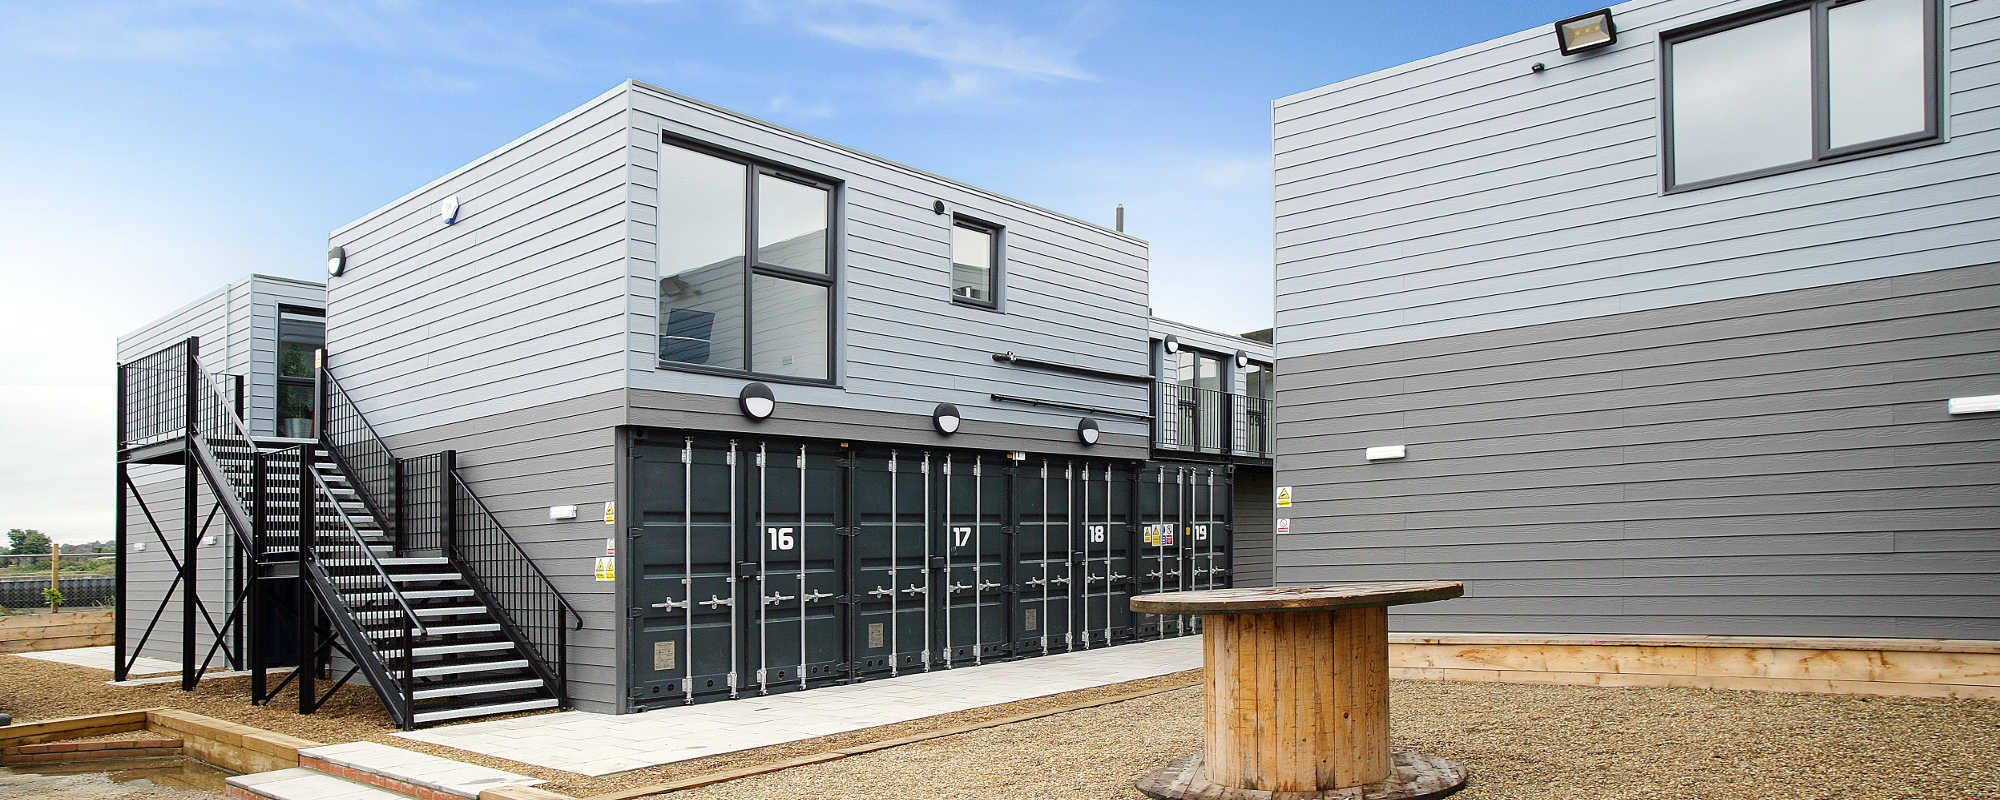 Innovation Studios, Strood - Modular Construction Project